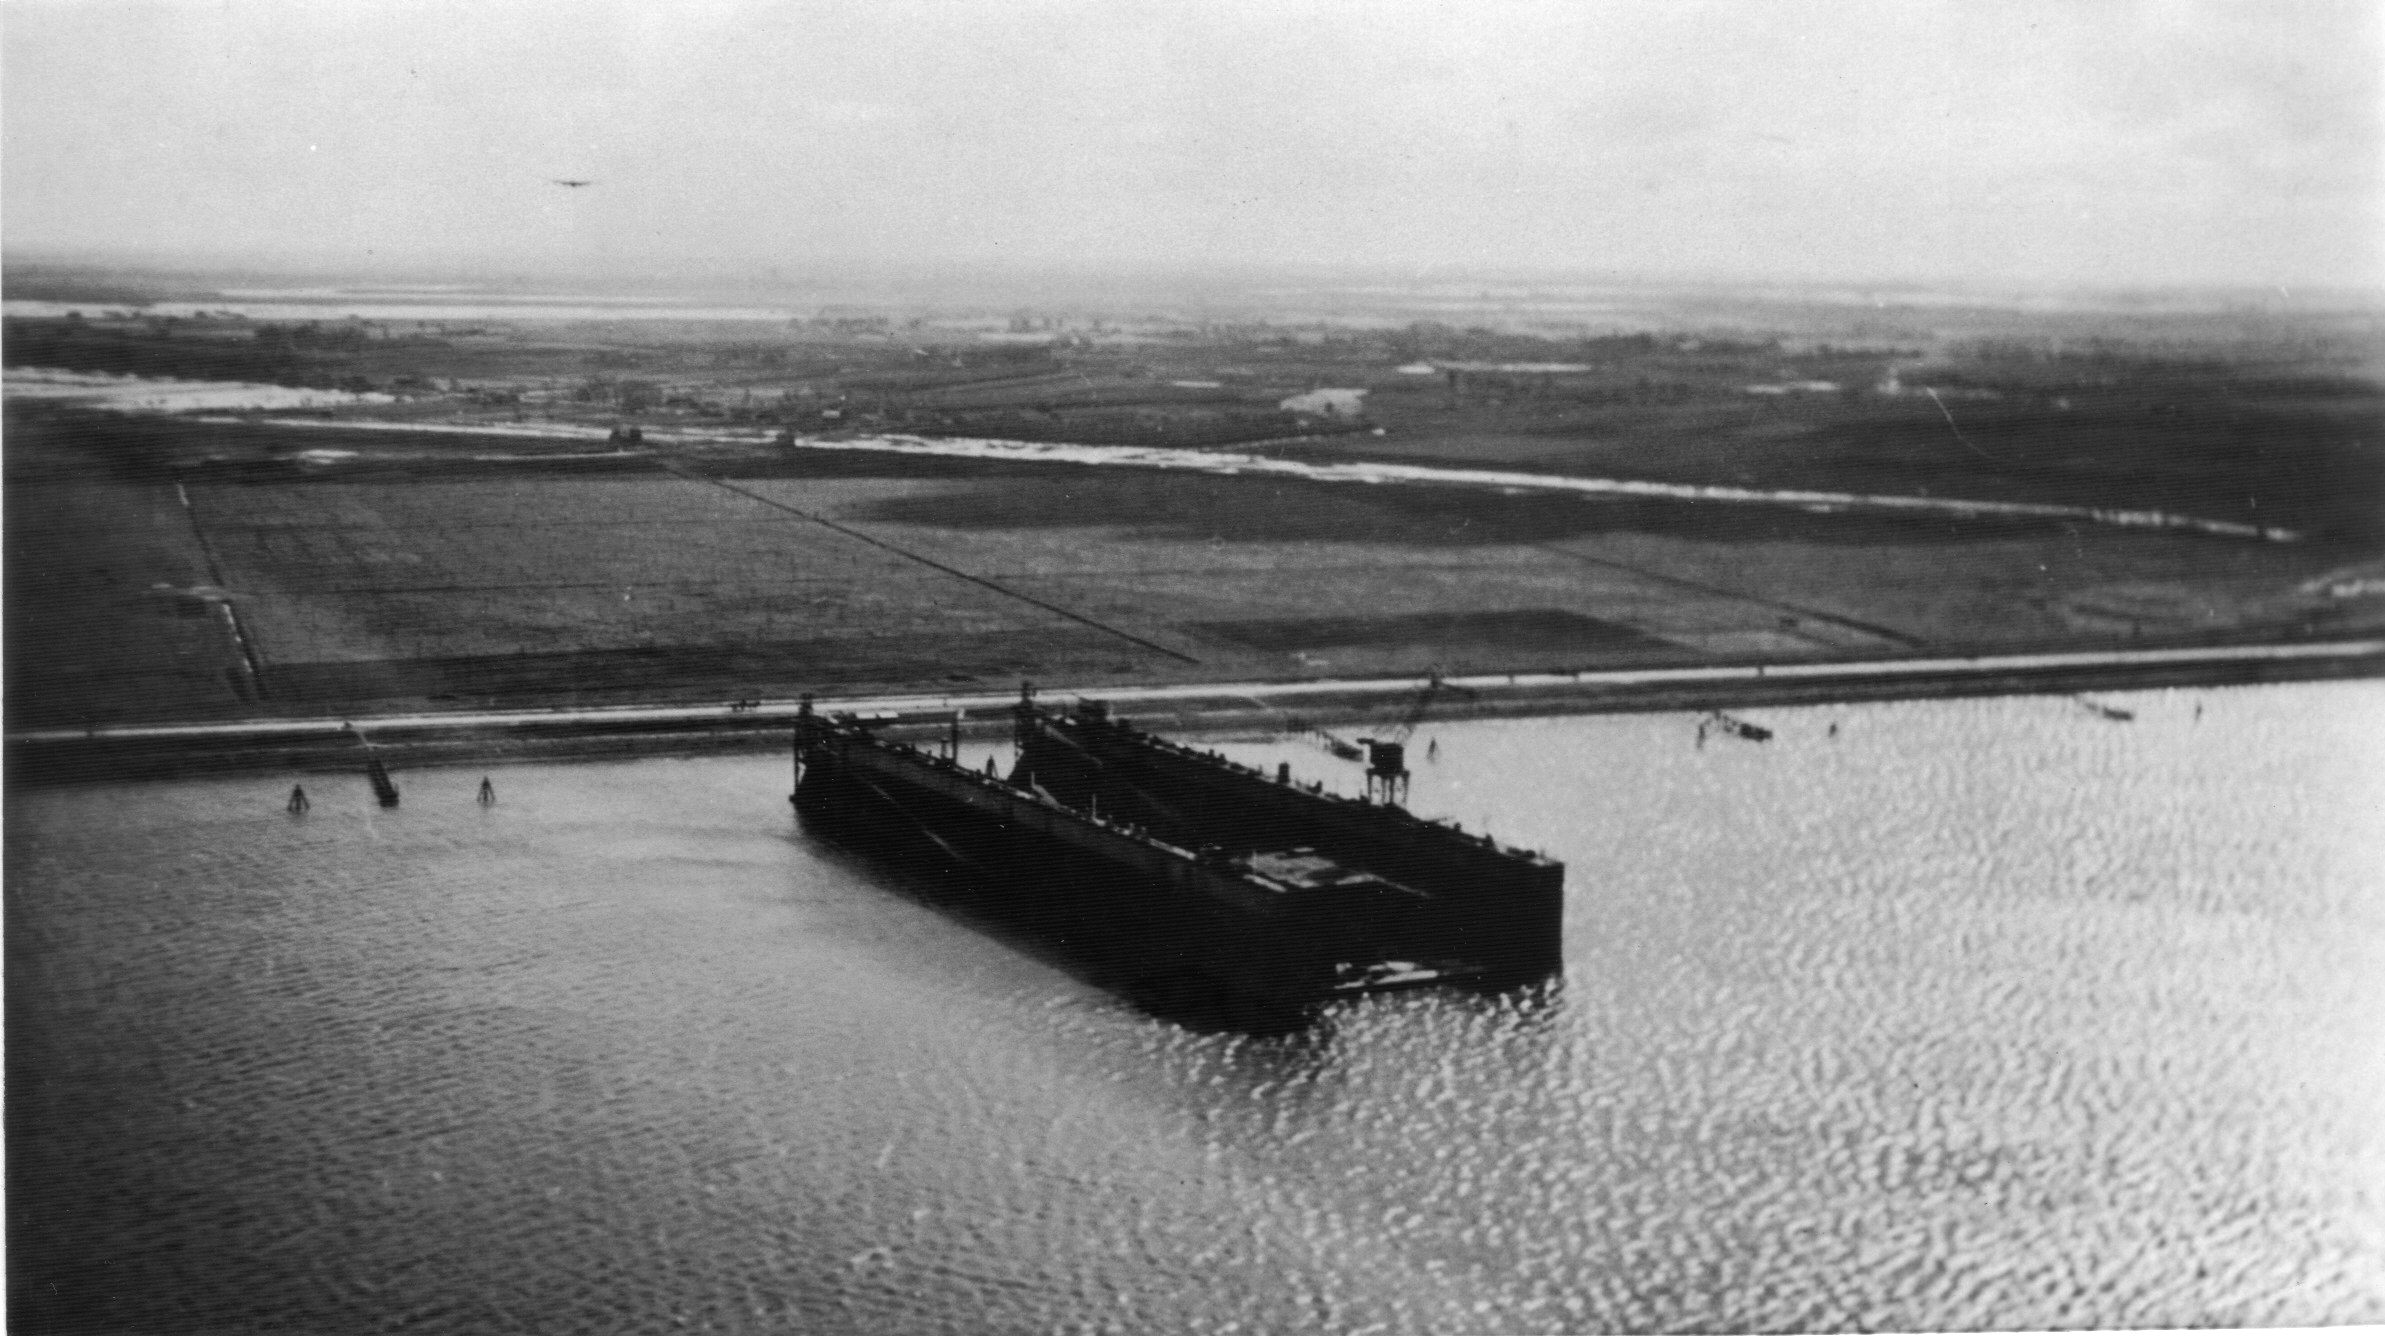 Waalhaven Airfield and Floating Dock